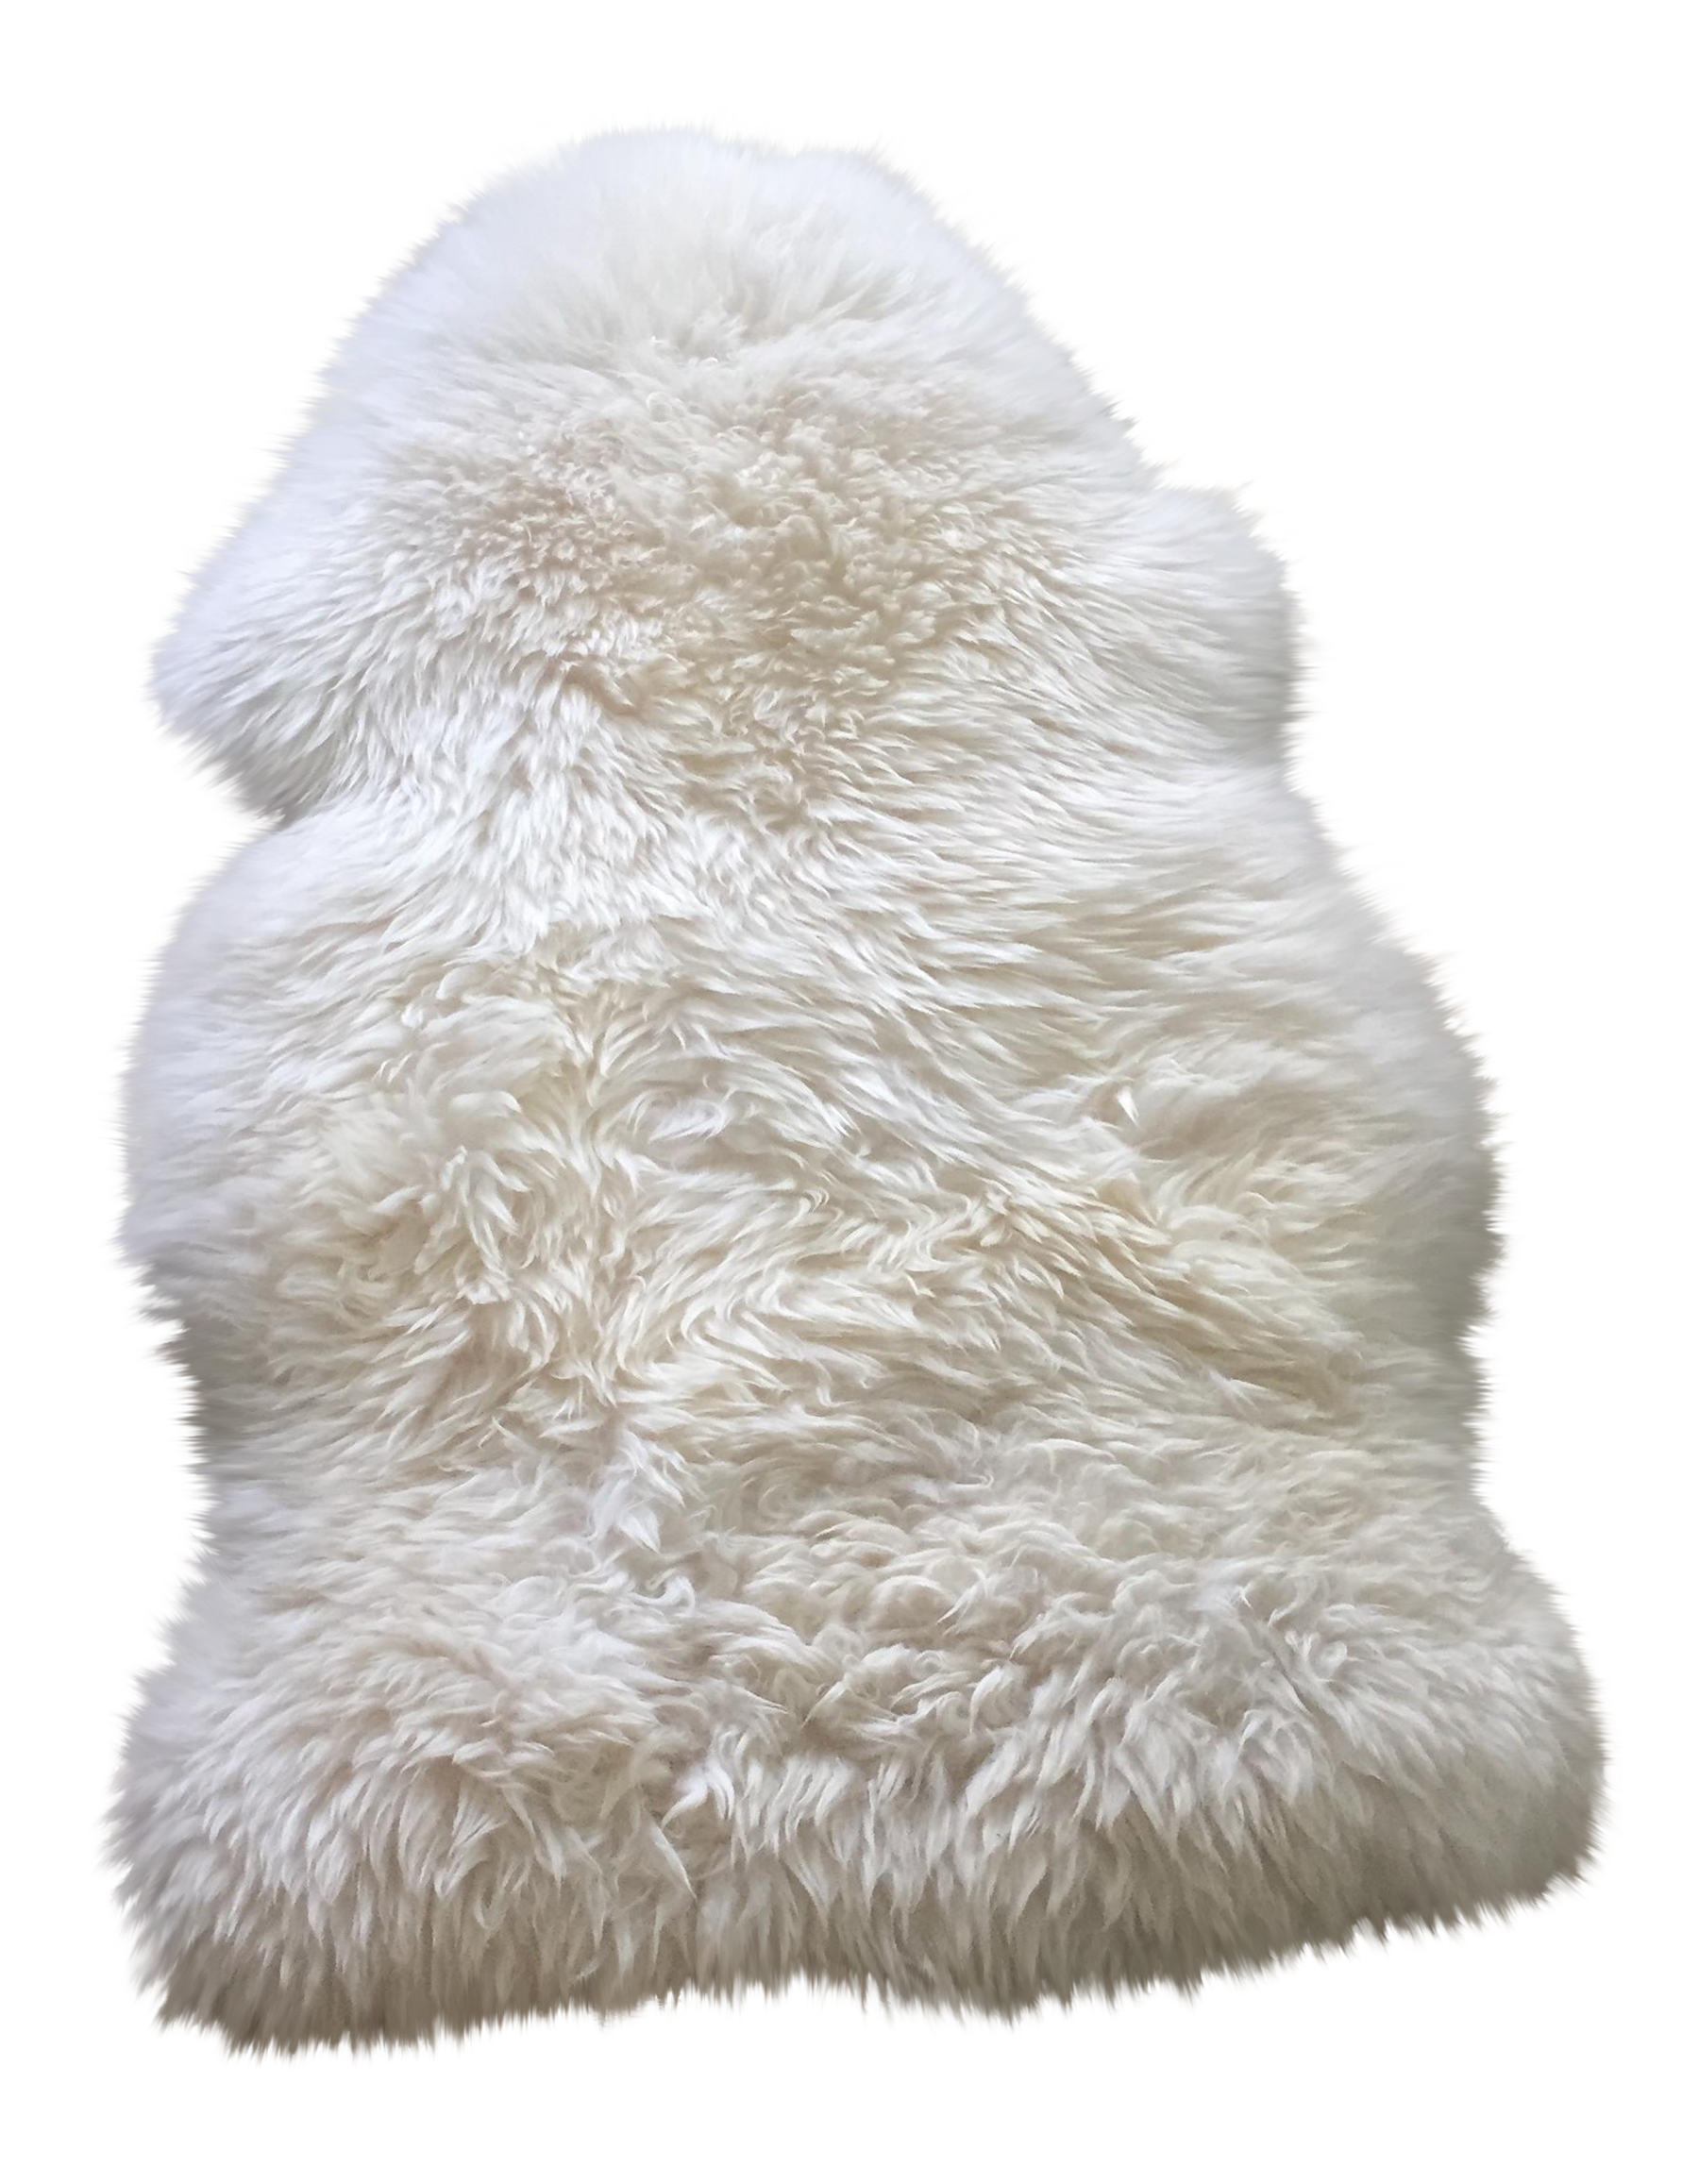 cowhide fur ideas area for ikea sheepskin faux round bear decoration pelt accessories white pi floor rugs blanket skin chair pink rug decorating sheep beautiful flokati